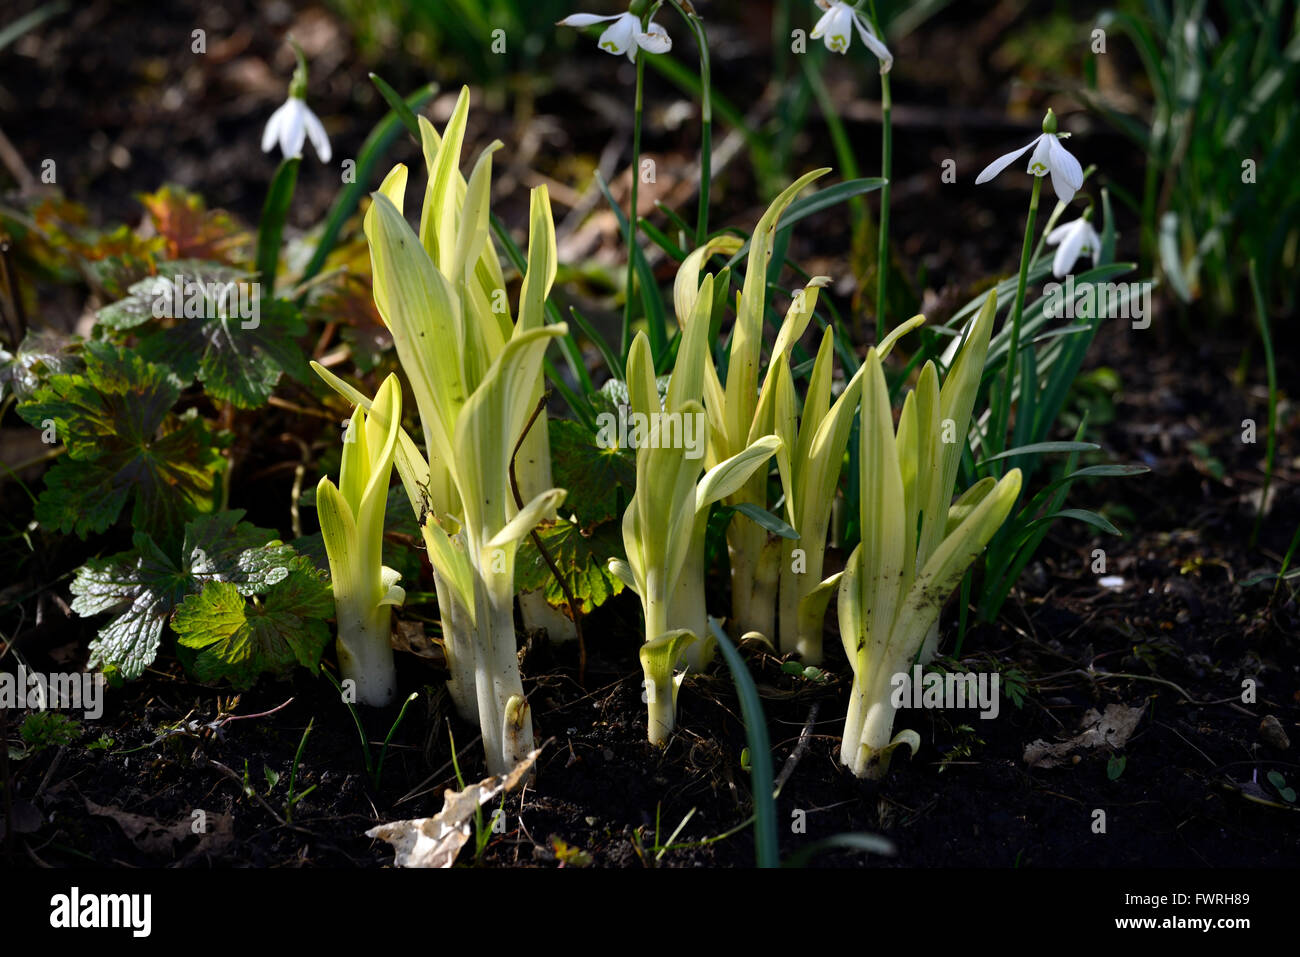 shoot shoots tip tips new growth emerge emerging spring RM Floral - Stock Image